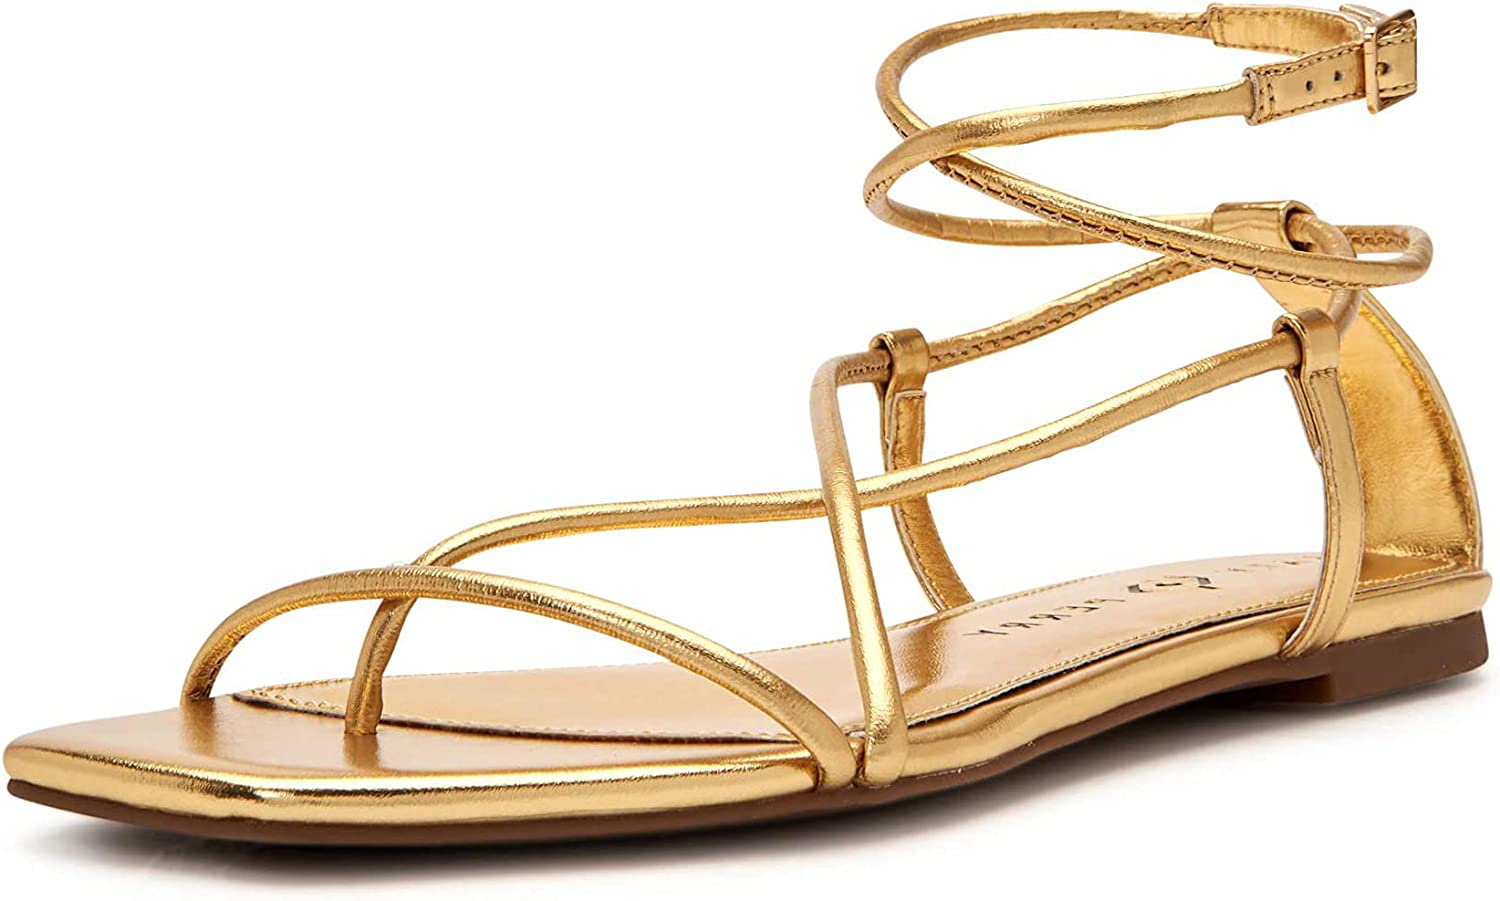 Katy Surprise price Perry Women's Jacksonville Mall The Luv Flat Sandal